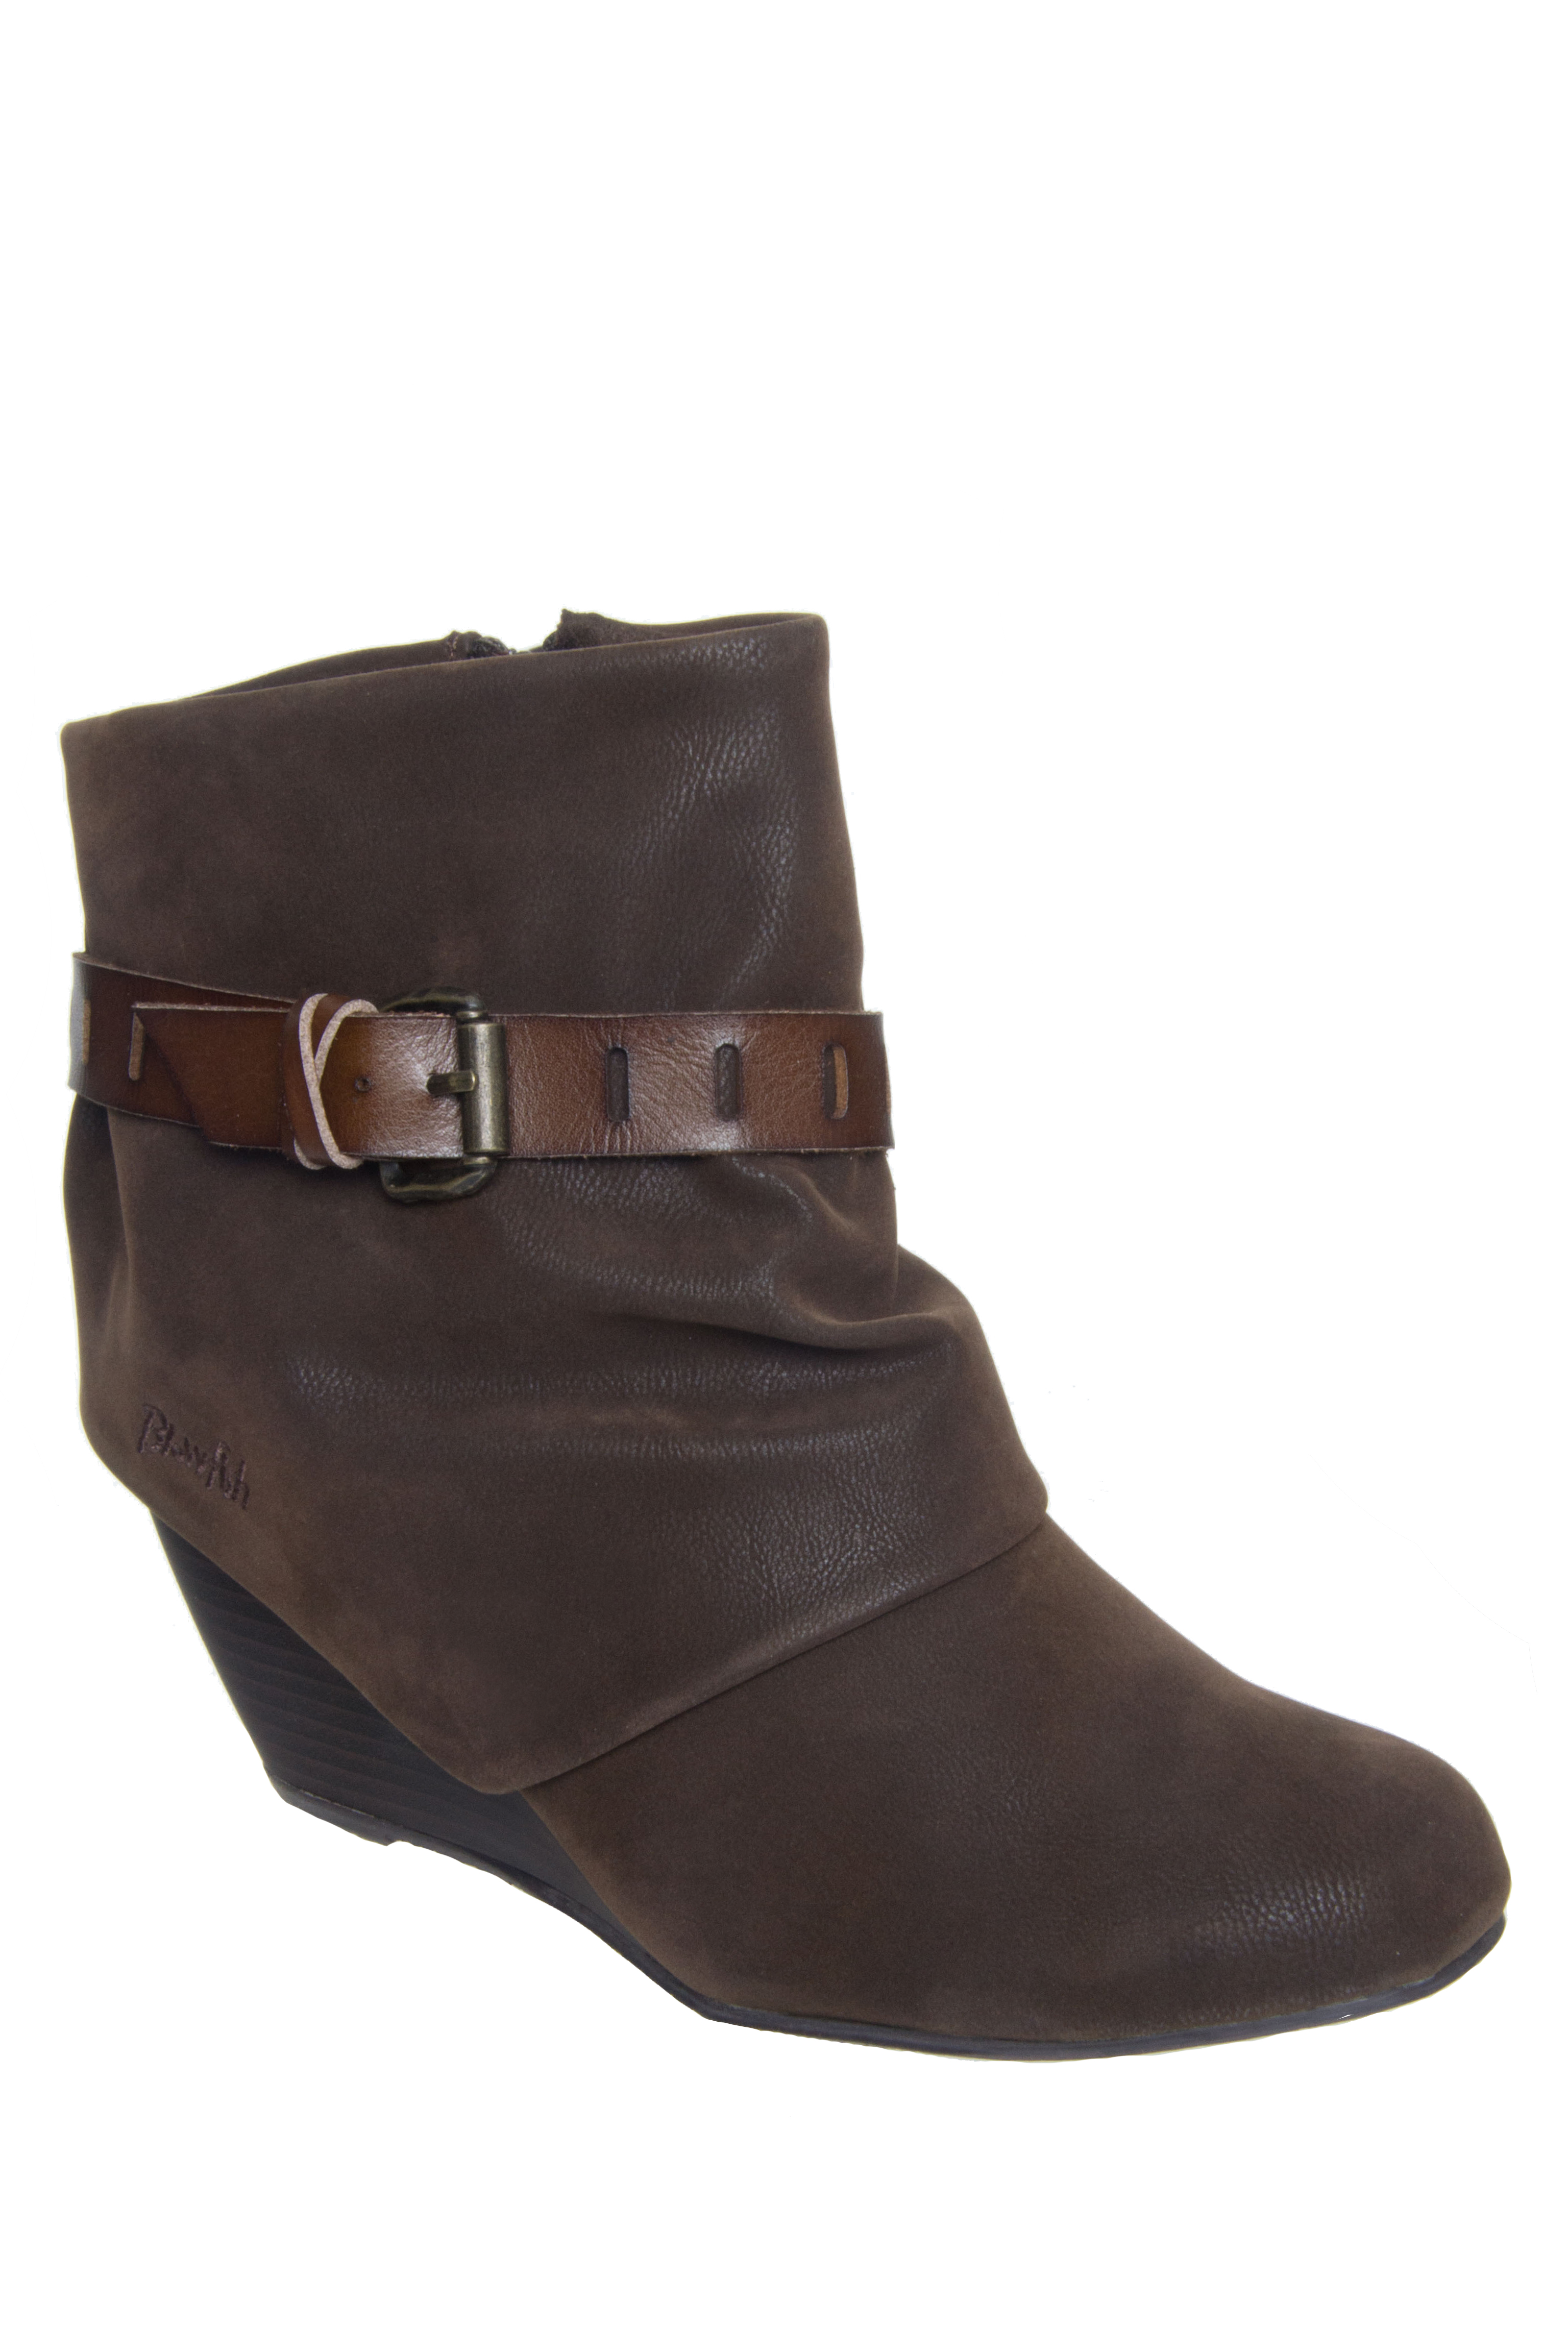 Blowfish Beryl Mid Wedge Booties - Dark Brown